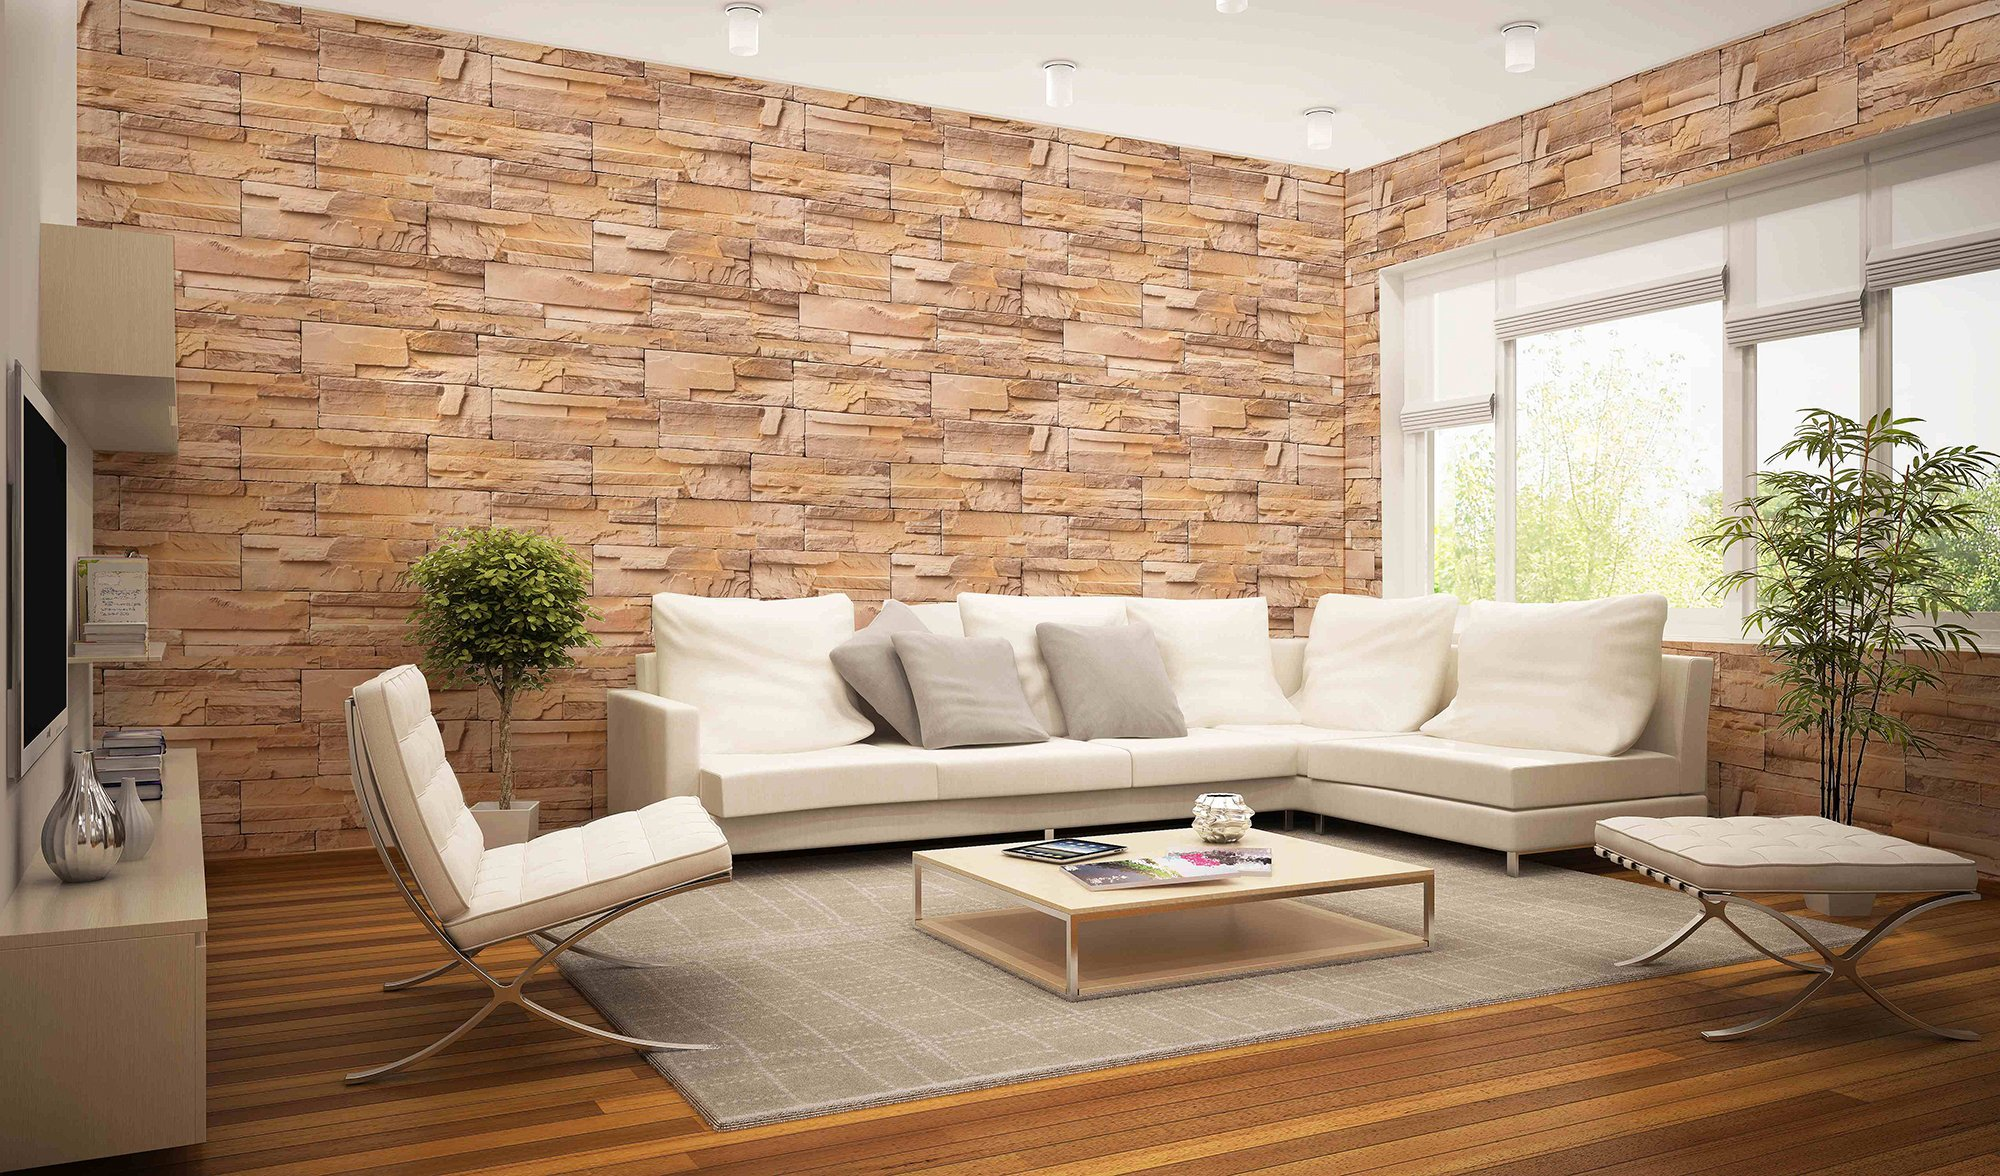 DecoProducts Madrid Bronze Stone Peel and Stick 3D Effect Self Adhesive DIY Wallpaper 16.4ft. L x W 23.6 in. Roll by DecoProducts